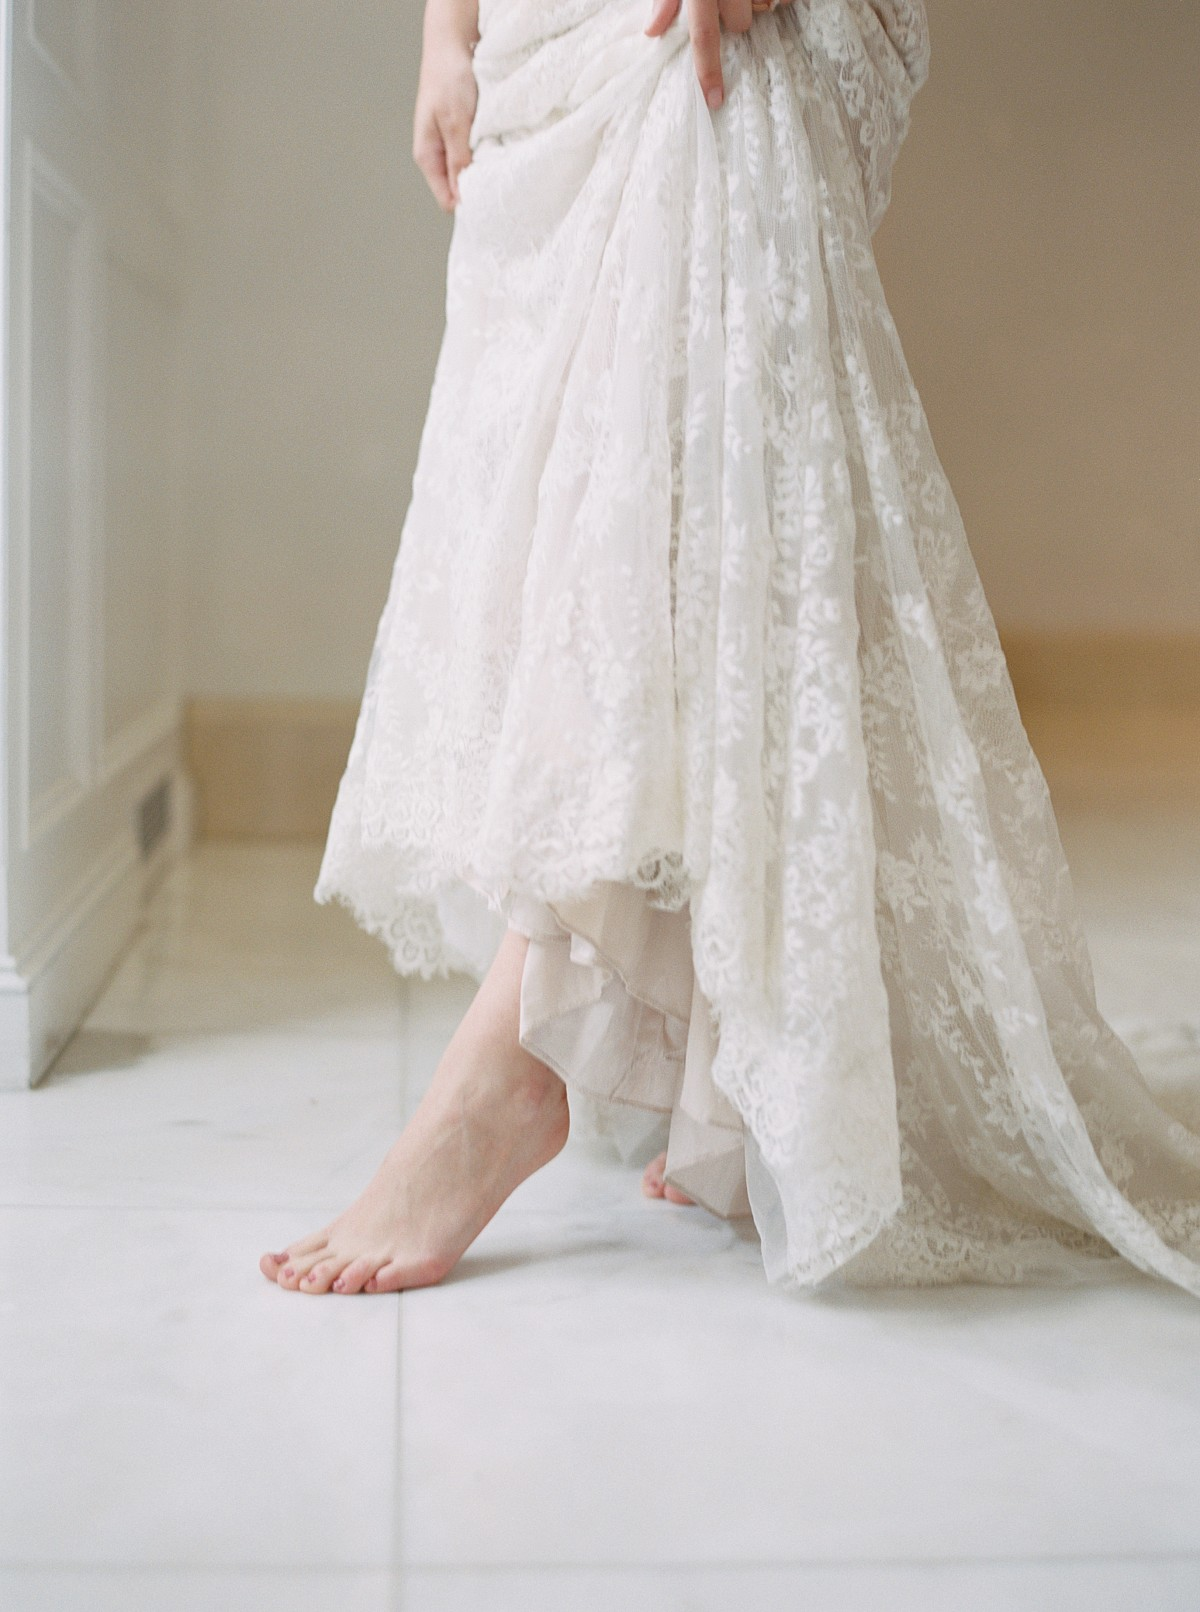 Pre-Wedding Bridal Sessions: Why we love them